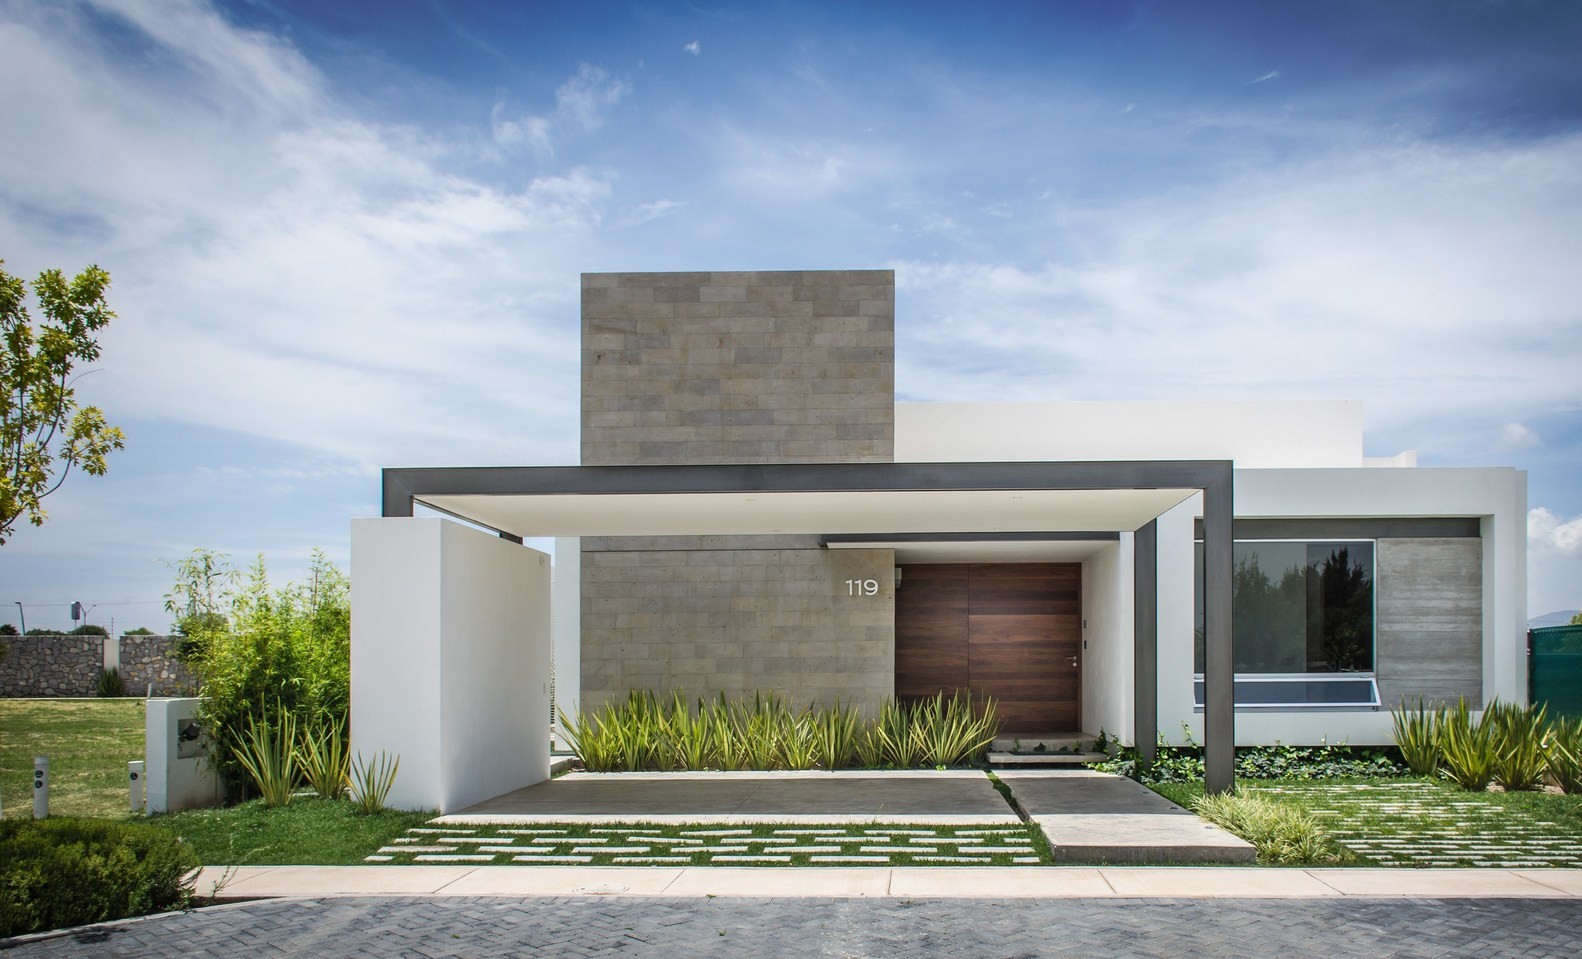 Arquitectura Y Diseño De Interiores Increíble House T02 by Adi Architecture and Interior Design In Mexico Of Arquitectura Y Diseño De Interiores Nuevo Baires Deco Design Diseño De Interiores Arquitectura